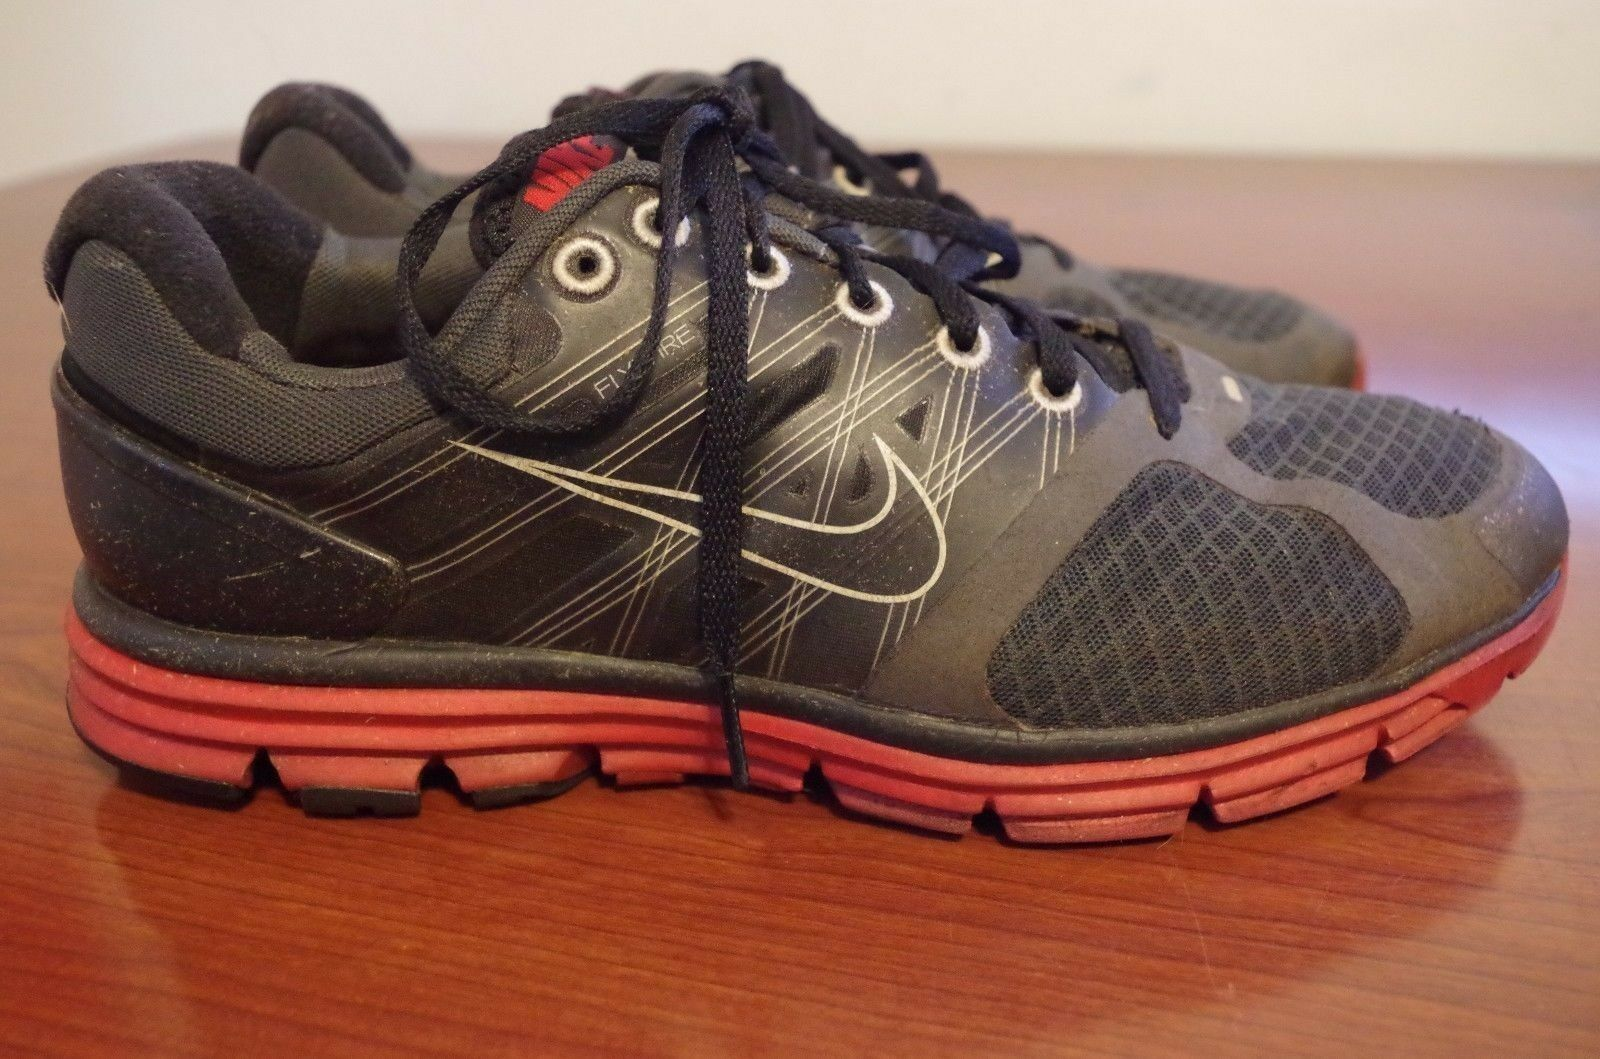 d569b9f8457b Nike Lunarglide 2 Black red 407648-066 Size 9.5 for sale online